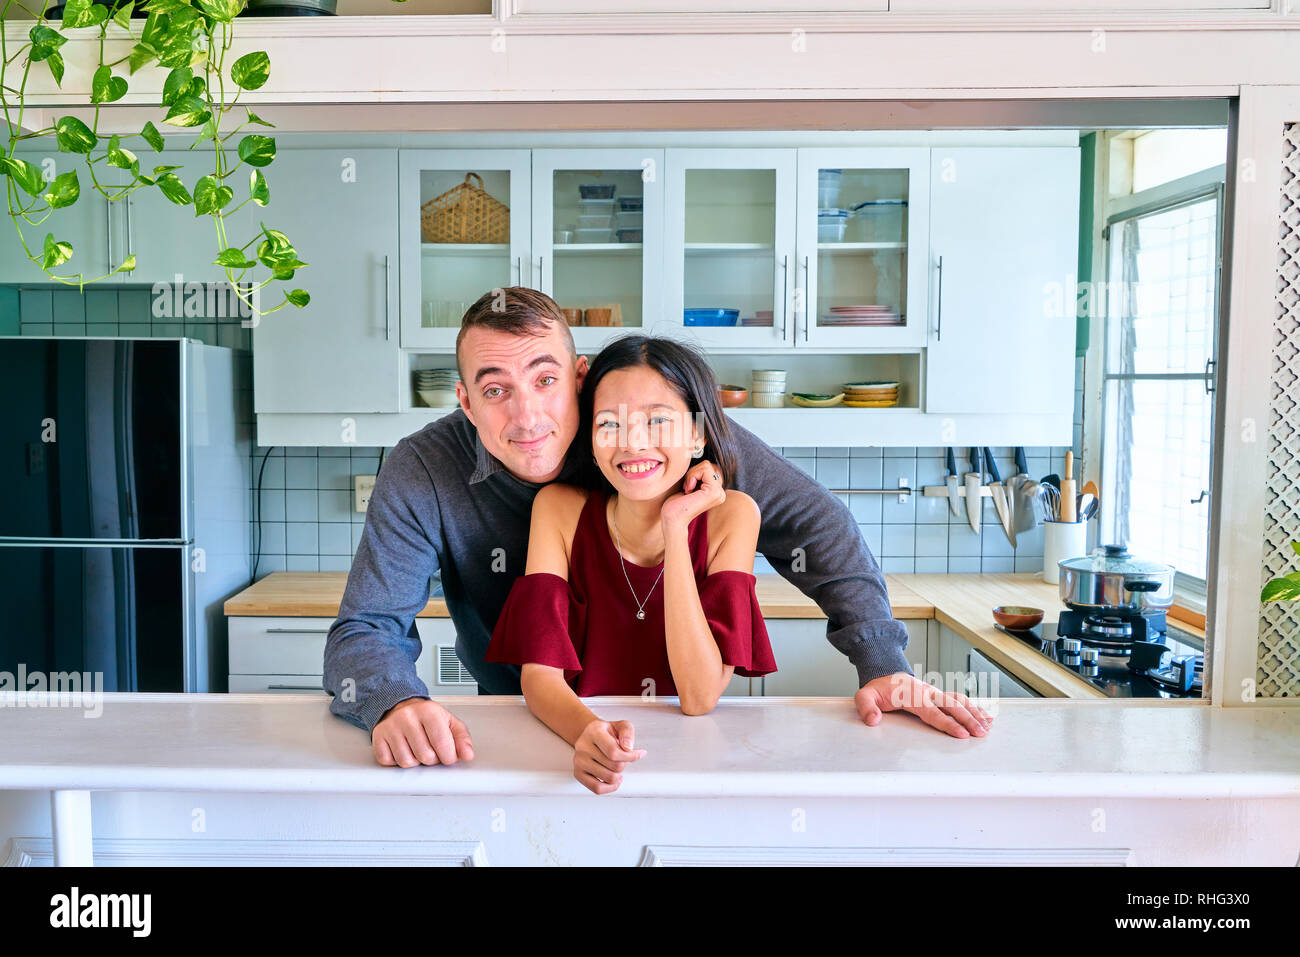 Lovely couple posing - looking at camera and smiling - Stock Image